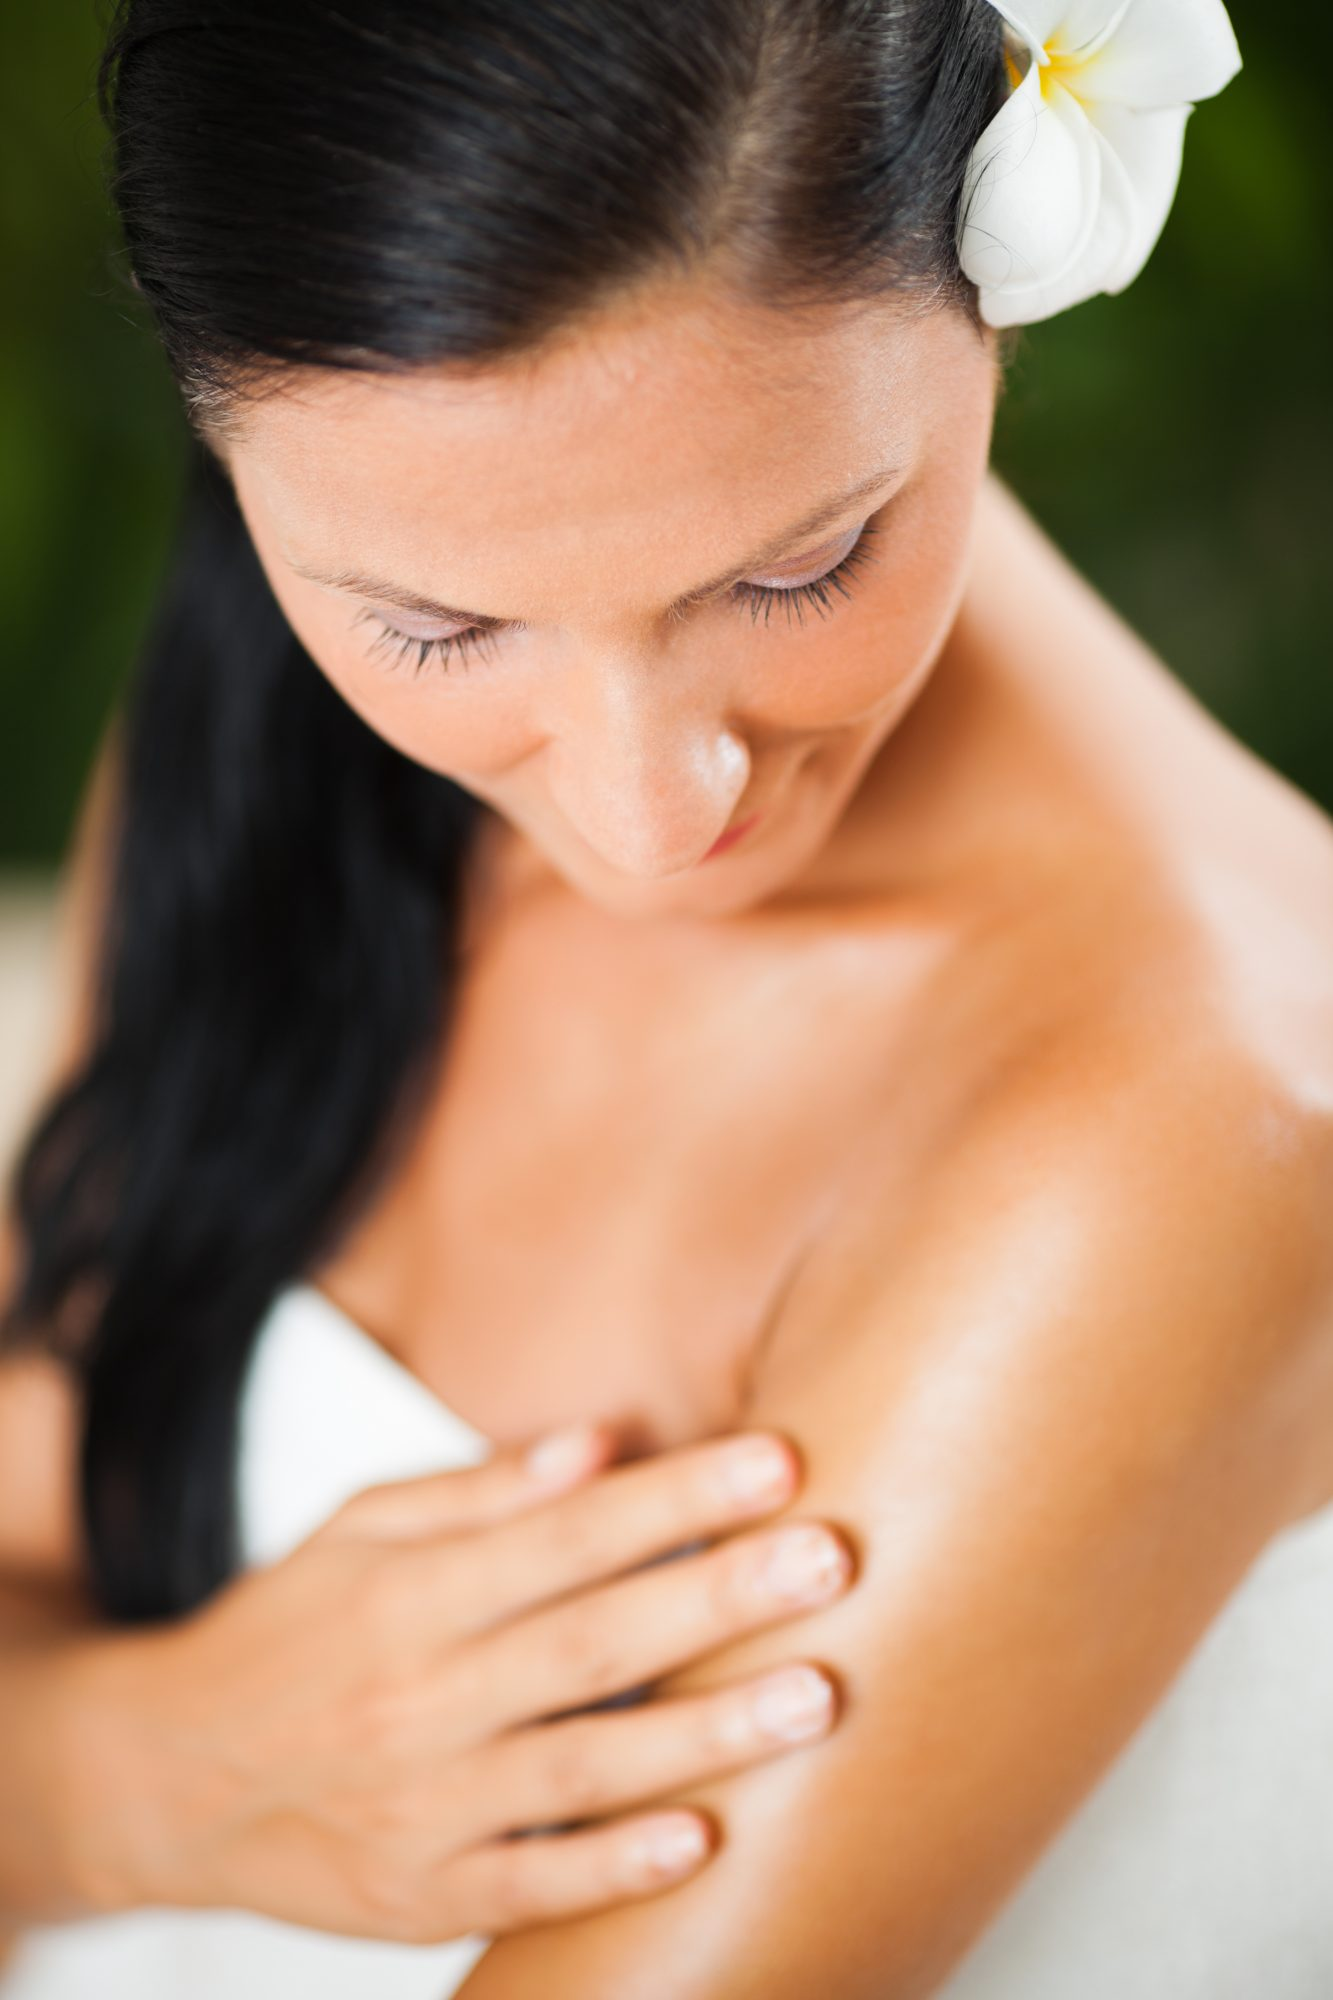 coconut-oil-uses-for-body